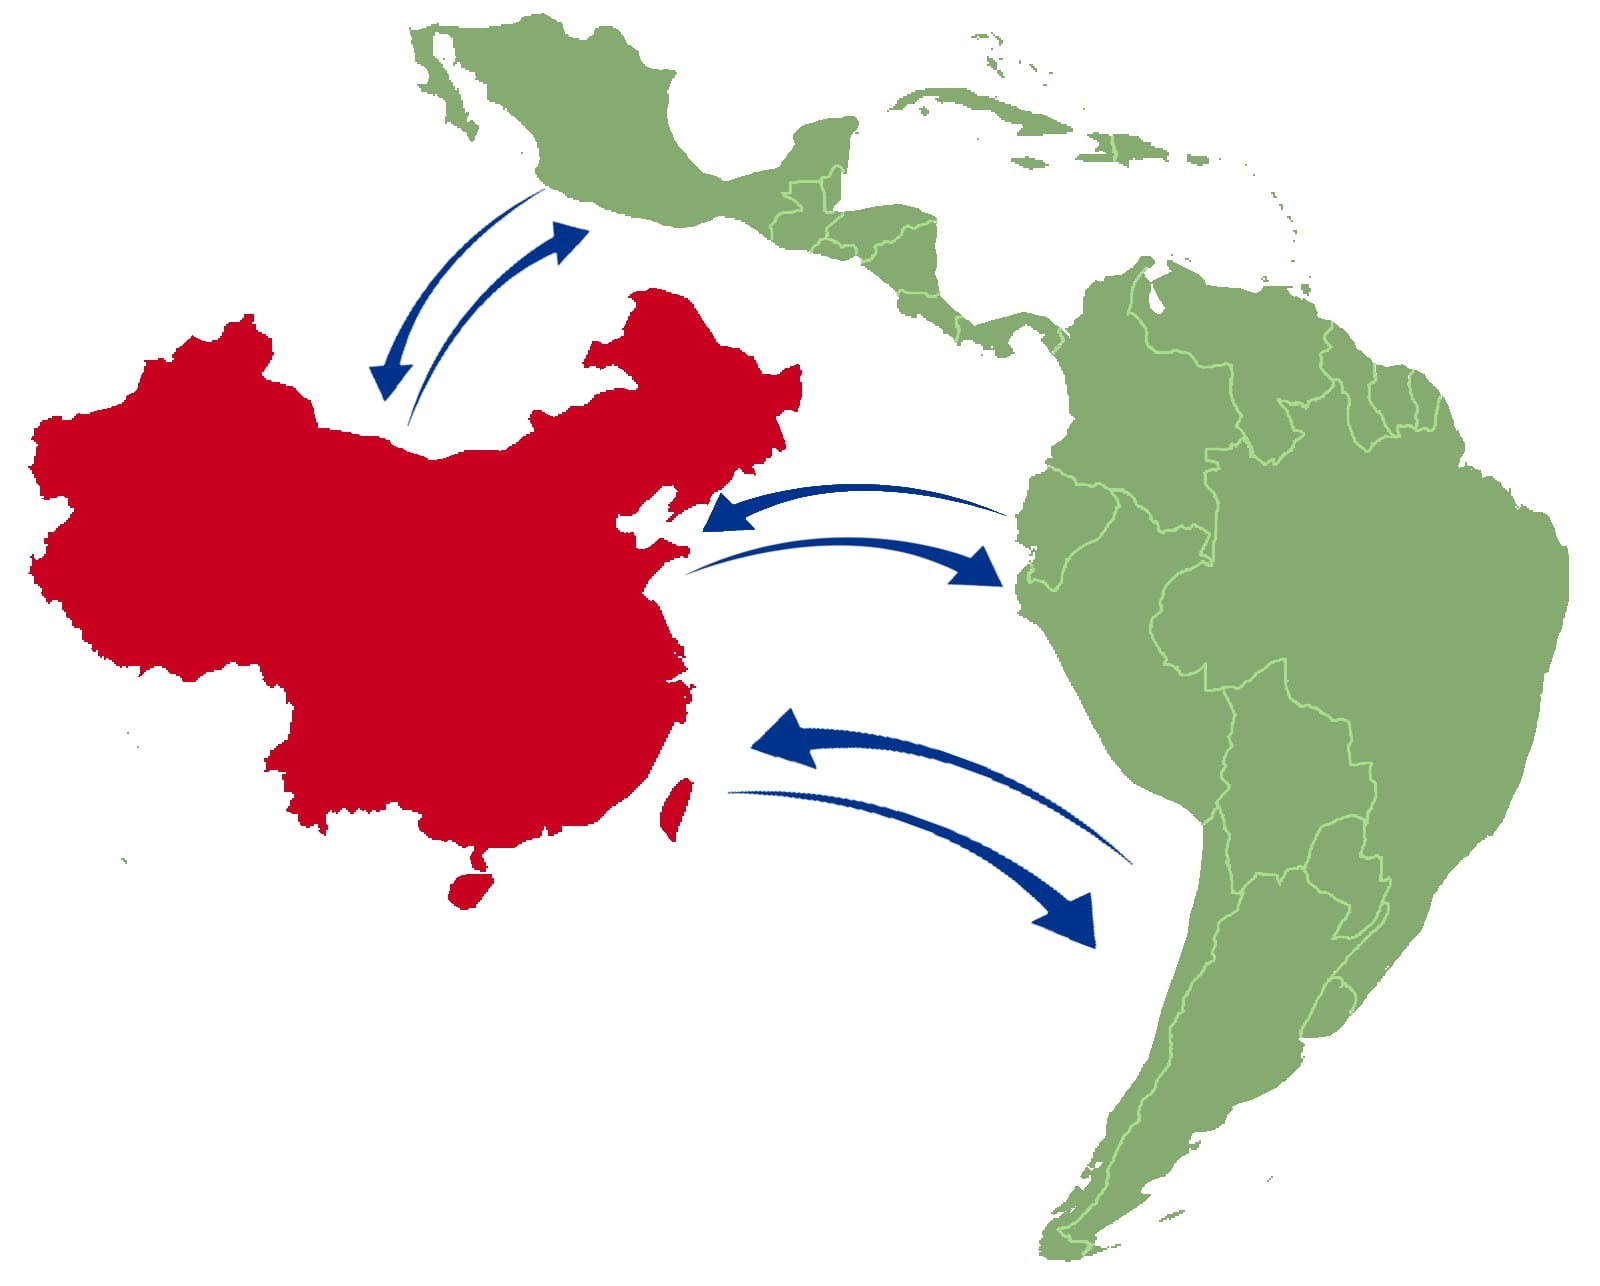 Chinese Map Of America.Chinese Investment In Latin America Americas Market Intelligence